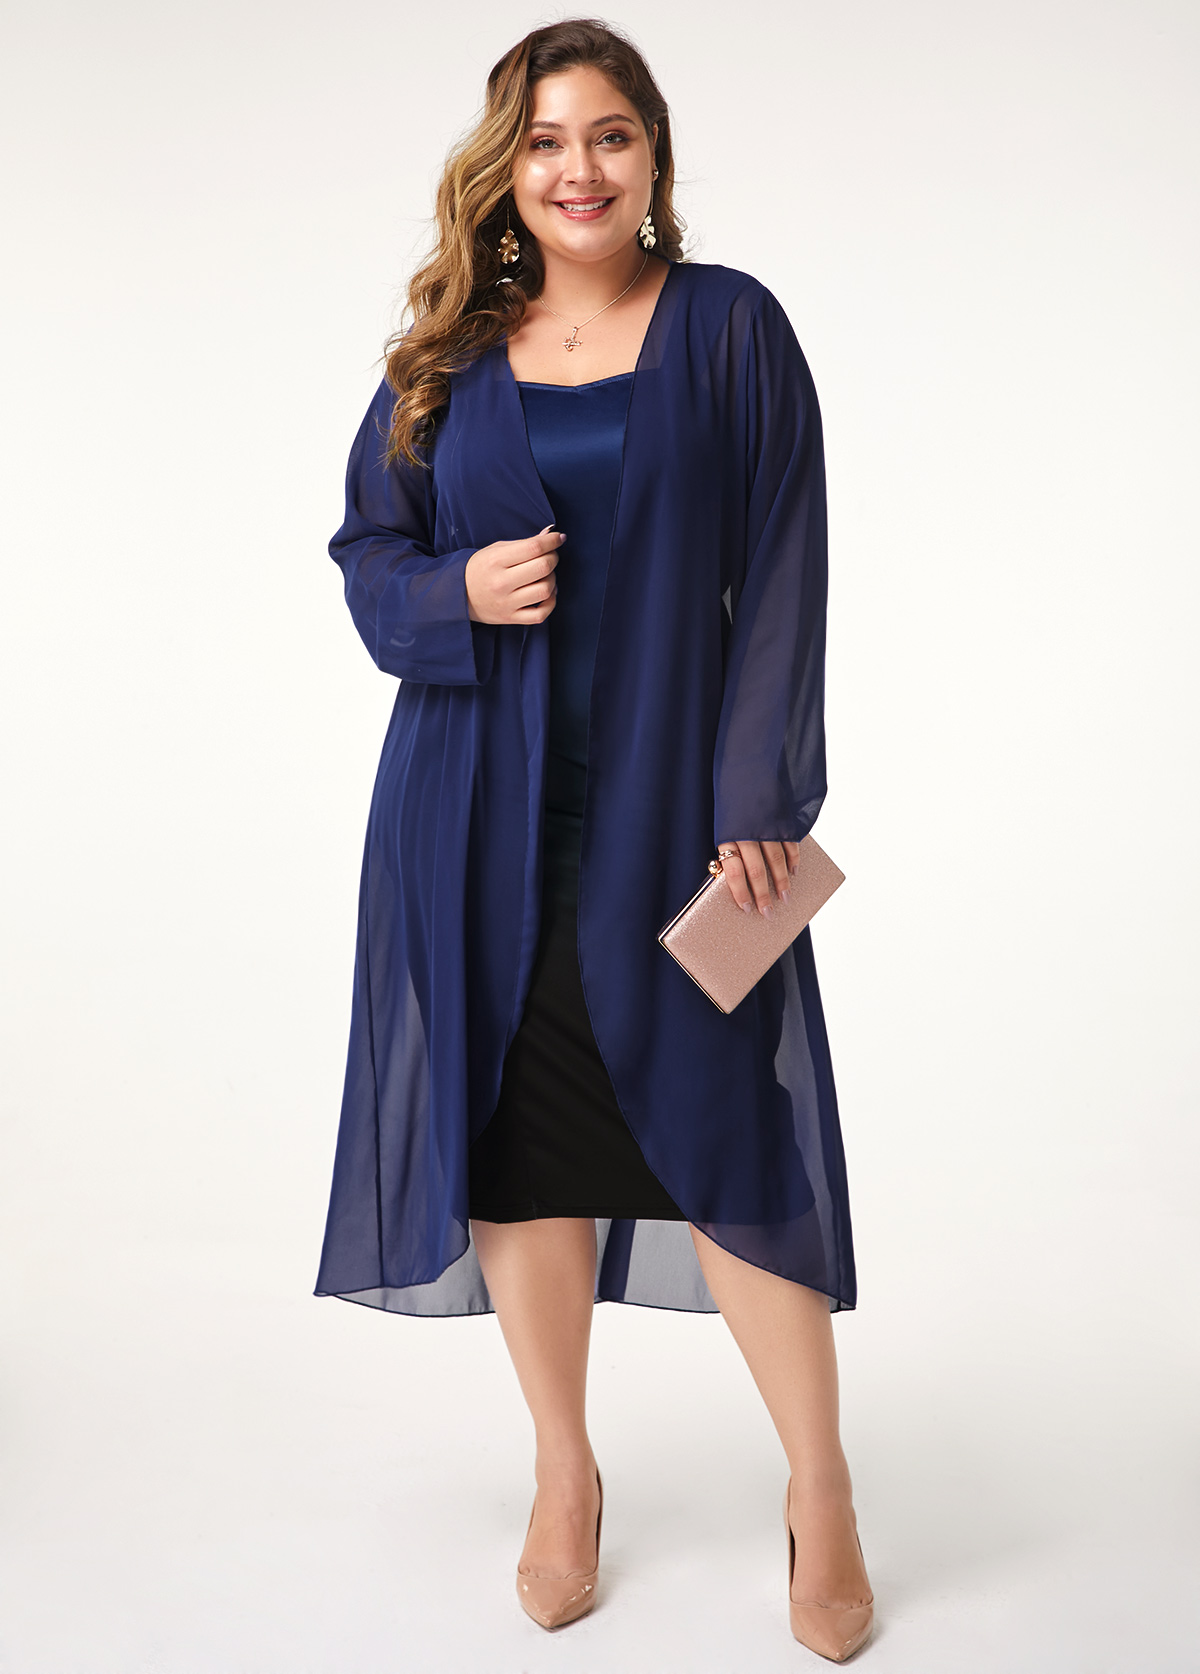 Plus Size Long Sleeve Chiffon Cardigan and Gradient Dress